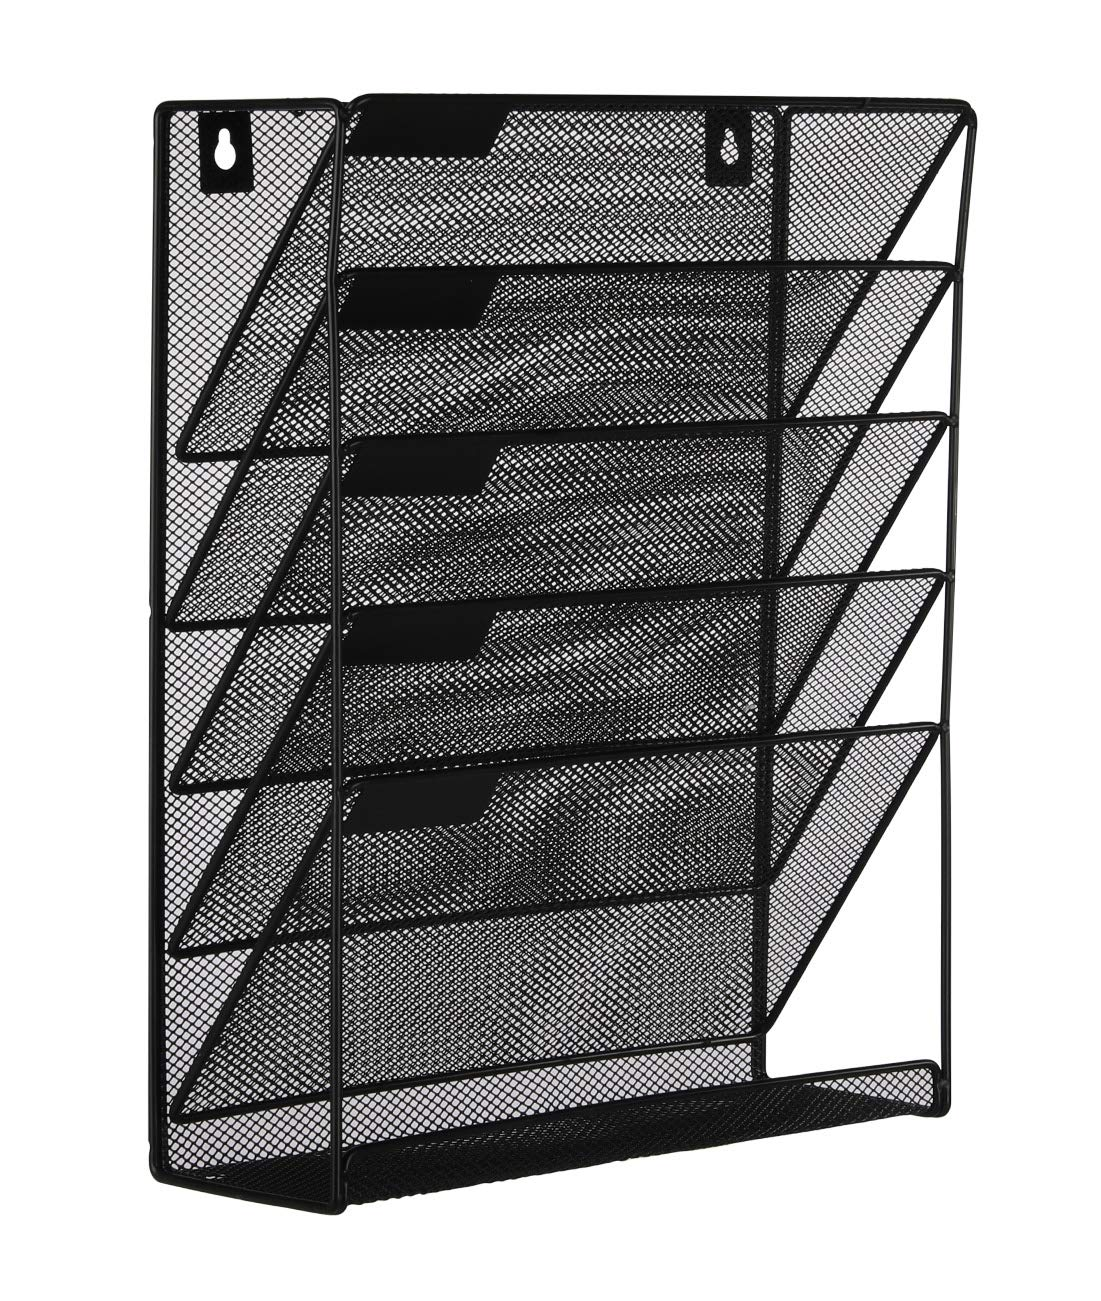 EasyPAG Mesh Wall File Holder 5 Tier Vertical Mount / Hanging Organizer with Bottom Flat Tray ,Black by EasyPAG